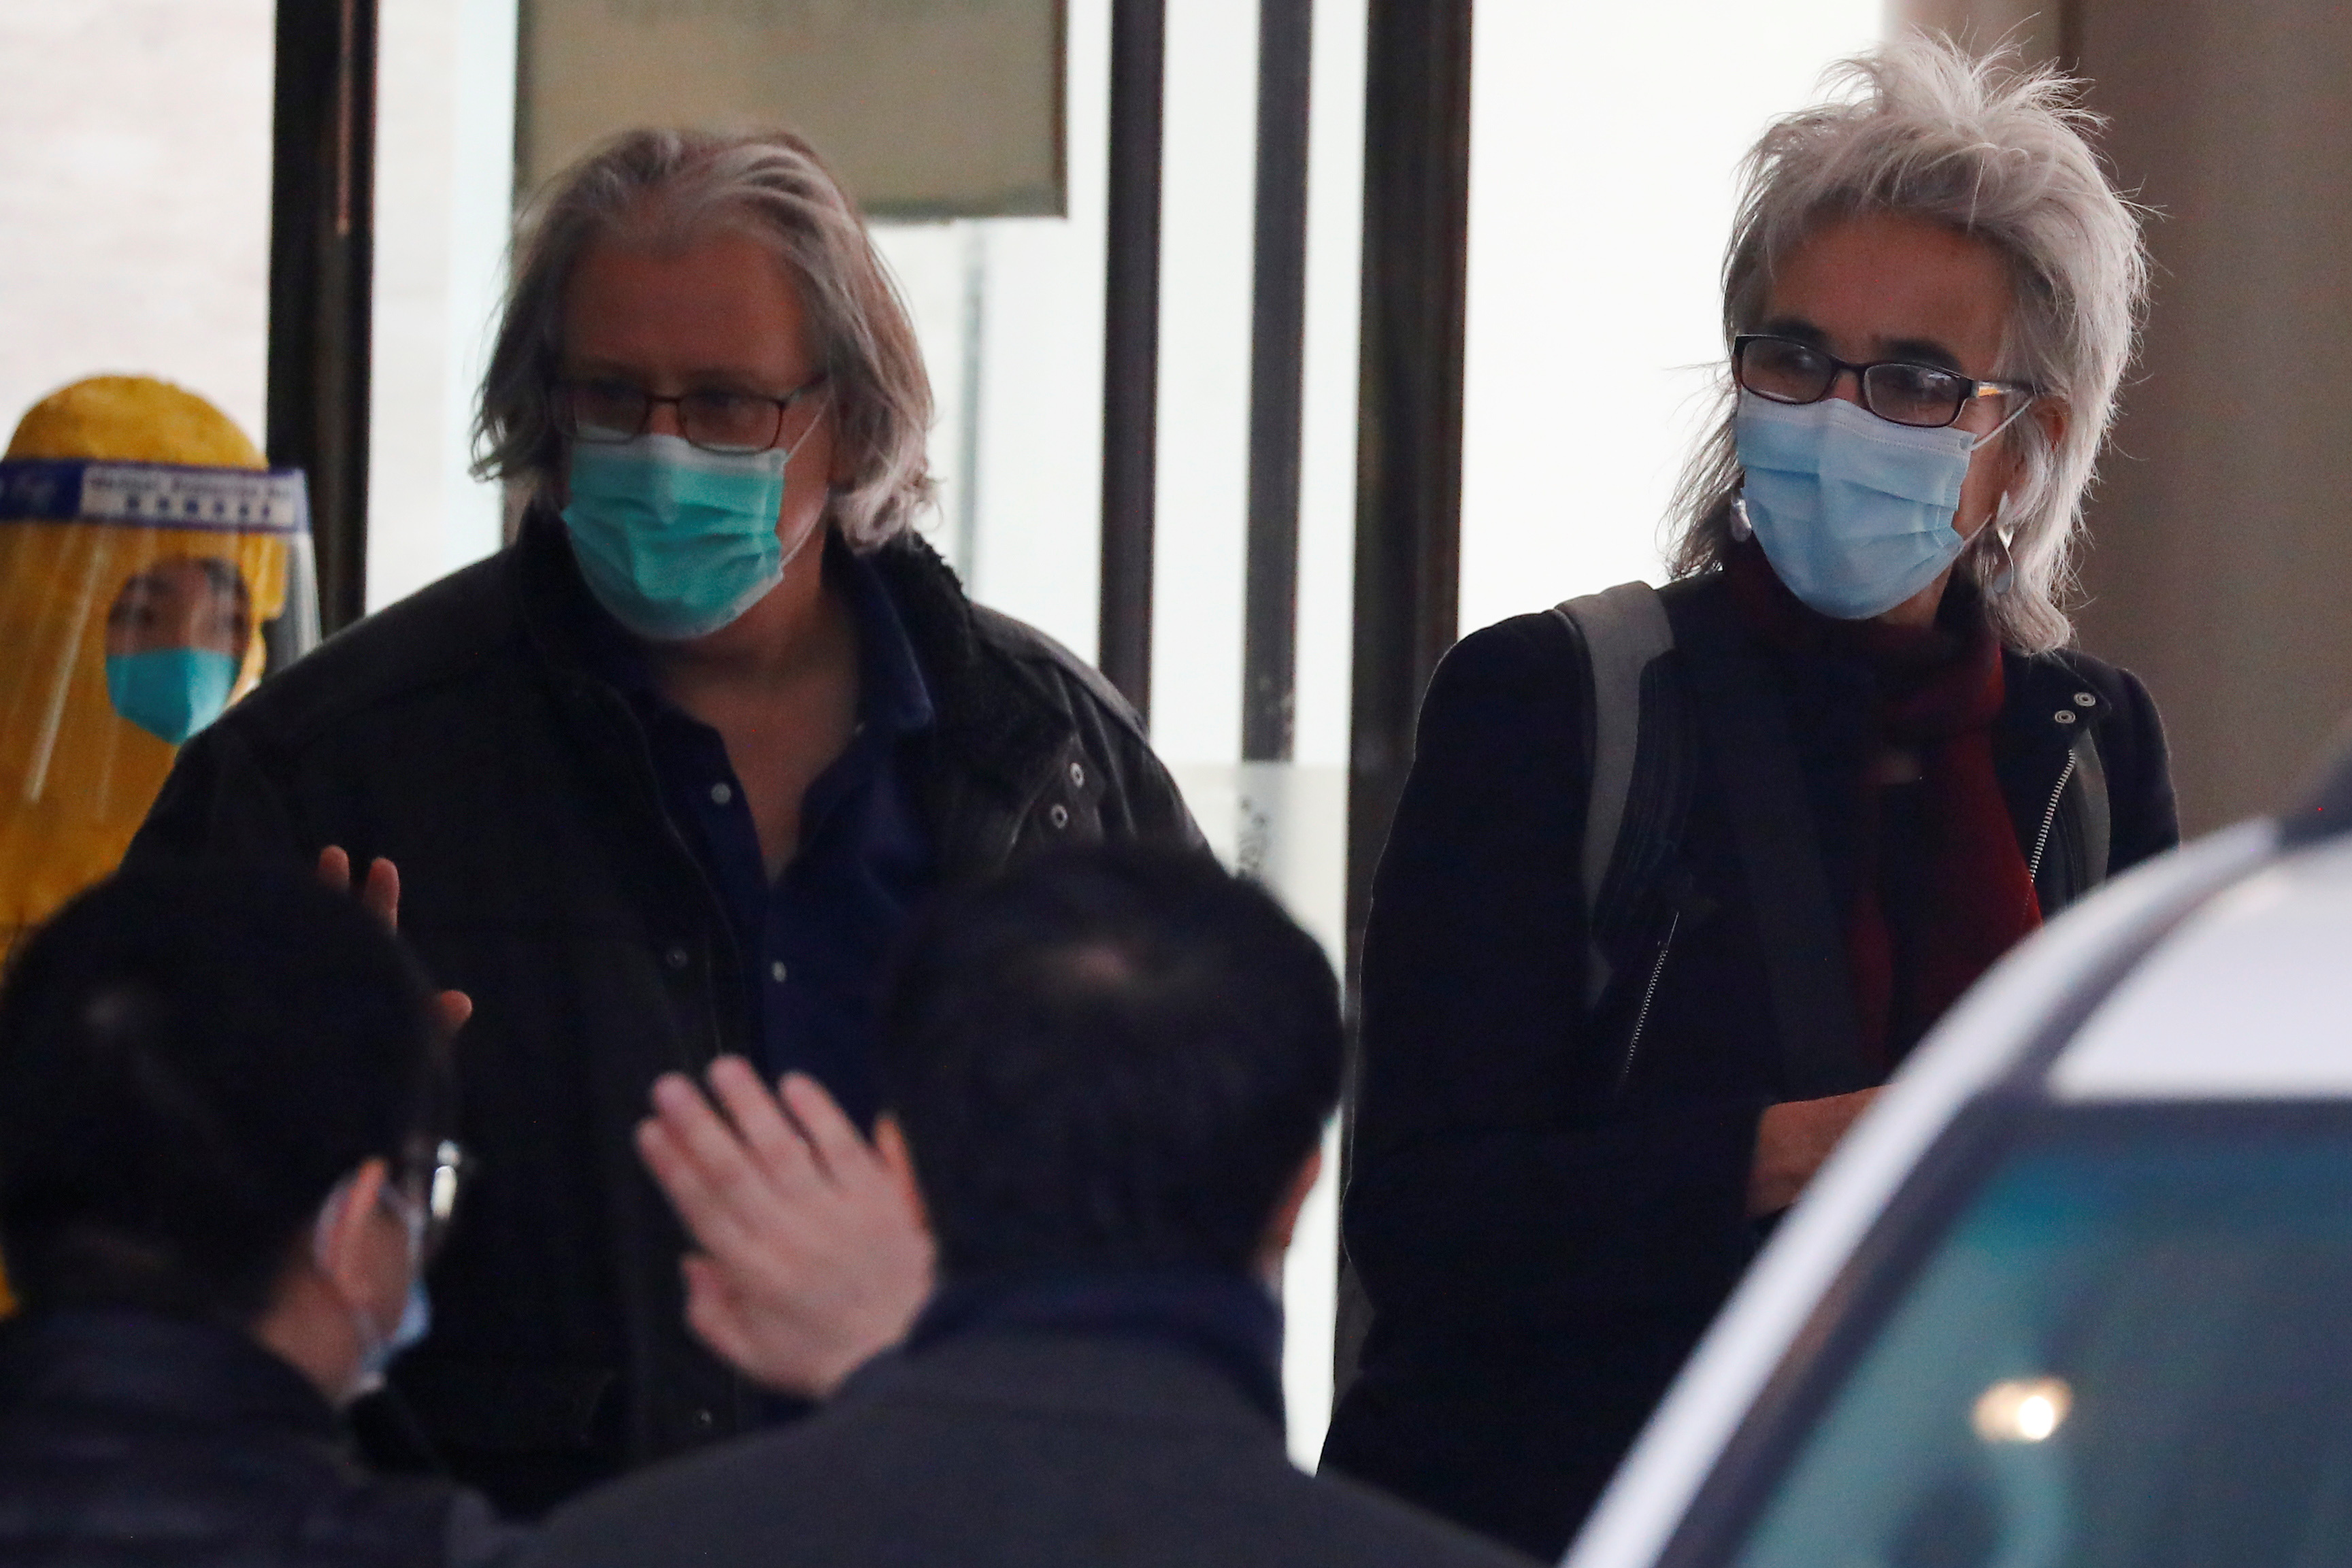 Members of the World Health Organisation (WHO) team tasked with investigating the origins of the coronavirus disease (COVID-19) pandemic leave their quarantine hotel in Wuhan, Hubei province, China January 28, 2021. REUTERS/Thomas Peter